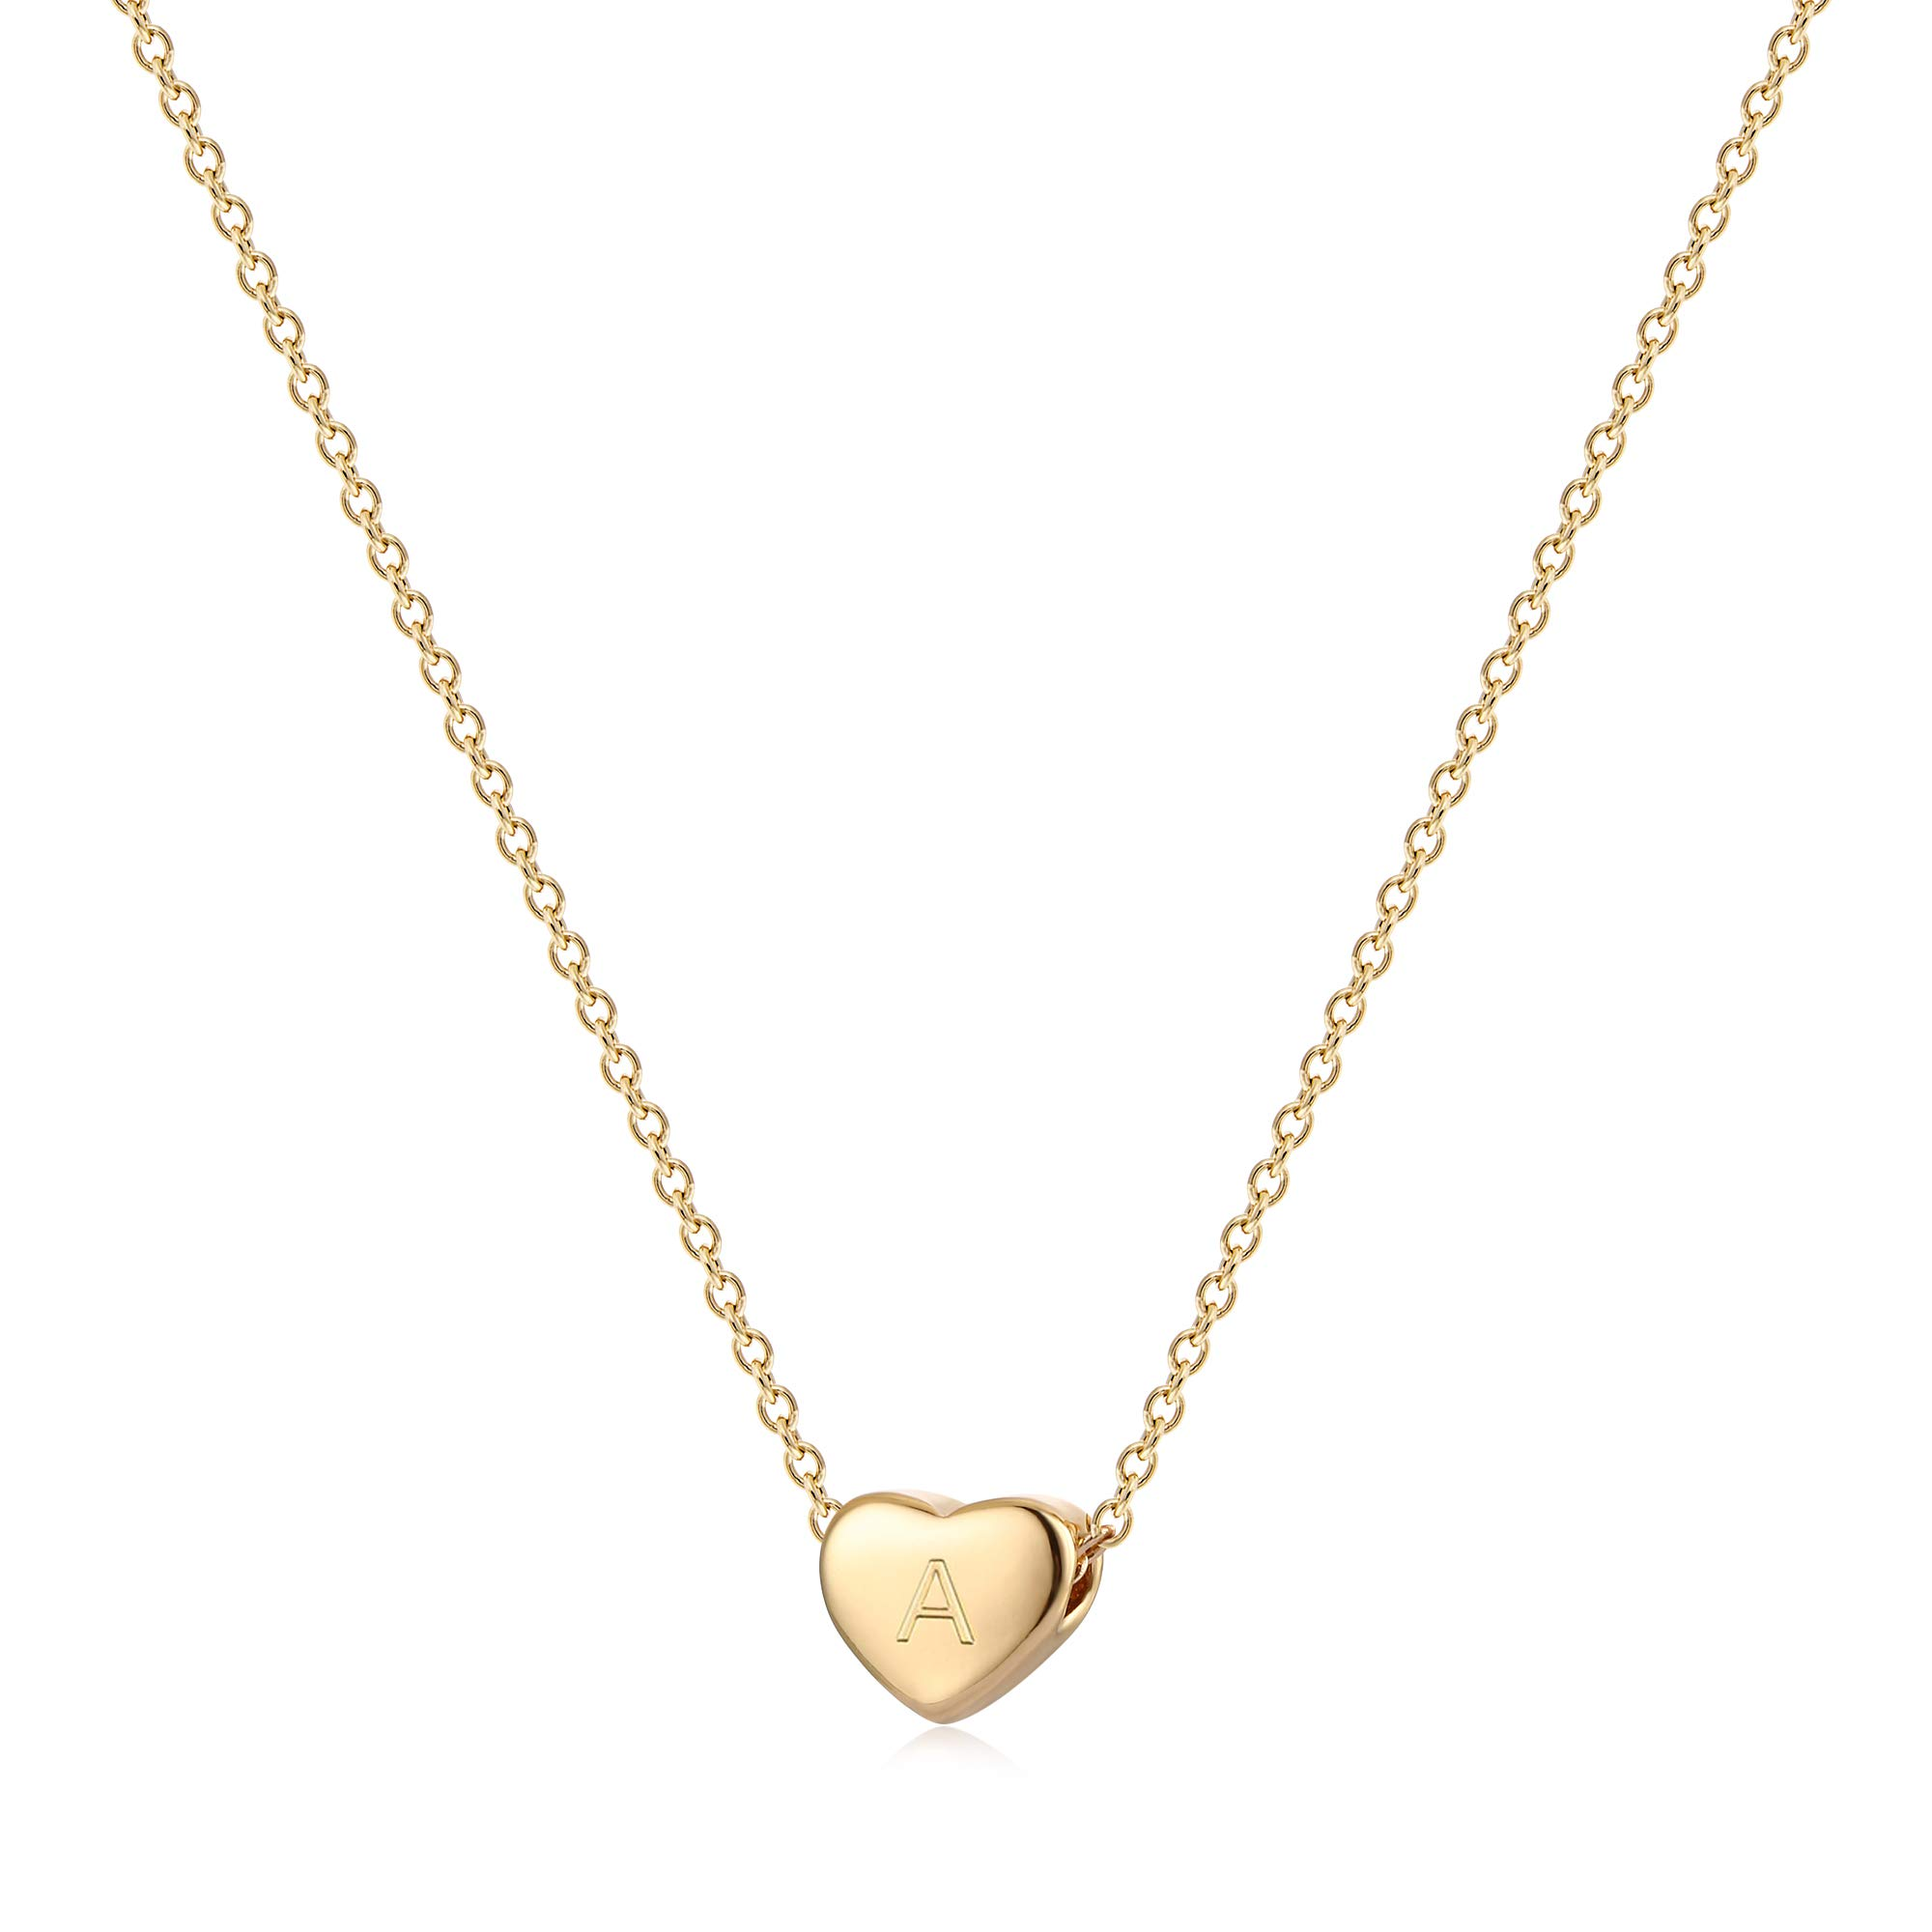 Tiny Gold Initial Heart Necklace 14k Gold Filled Delicate Cute Dainty Charm Initial Alphabet Letter Love Heart Choker Necklaces Best gift for Children